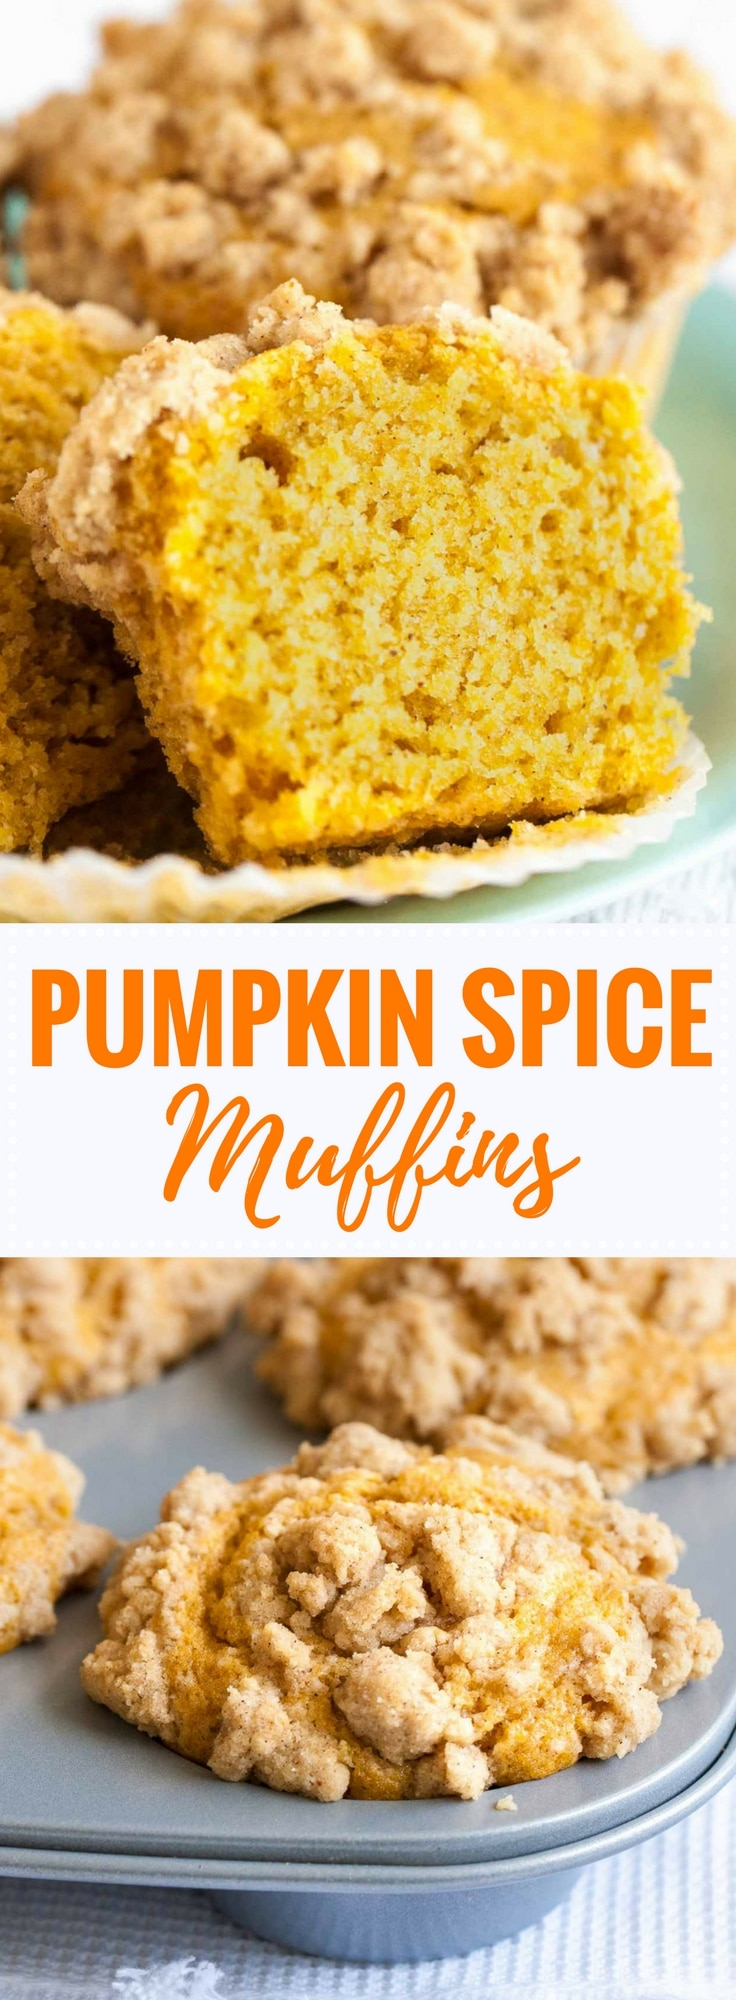 Pumpkin Spice Muffins are so flavorful, have a tender texture and are so moist! They are topped with crunchy pumpkin spice crumbs and take only 10 minutes to whip up. An easy pumpkin muffin recipe that tastes delicious for breakfast, brunch, or as a snack! #pumpkin #pumpkinspice #muffinrecipe #streusel